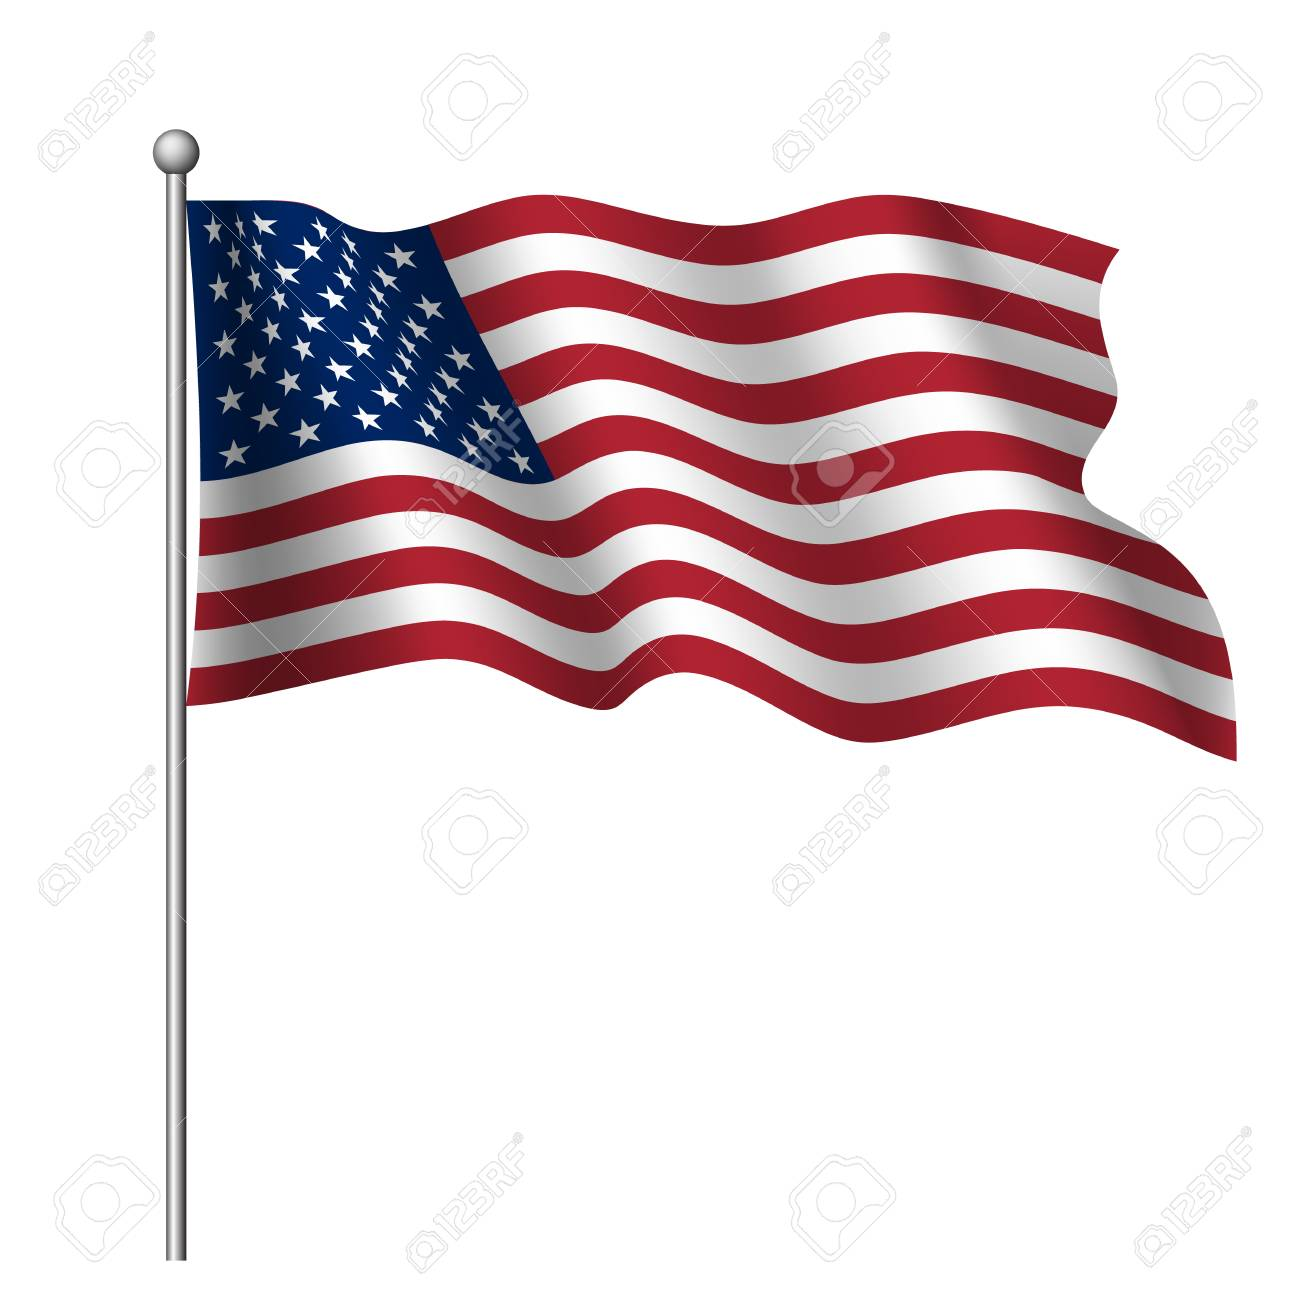 Waving National Flag Of United States Of America Isolated On